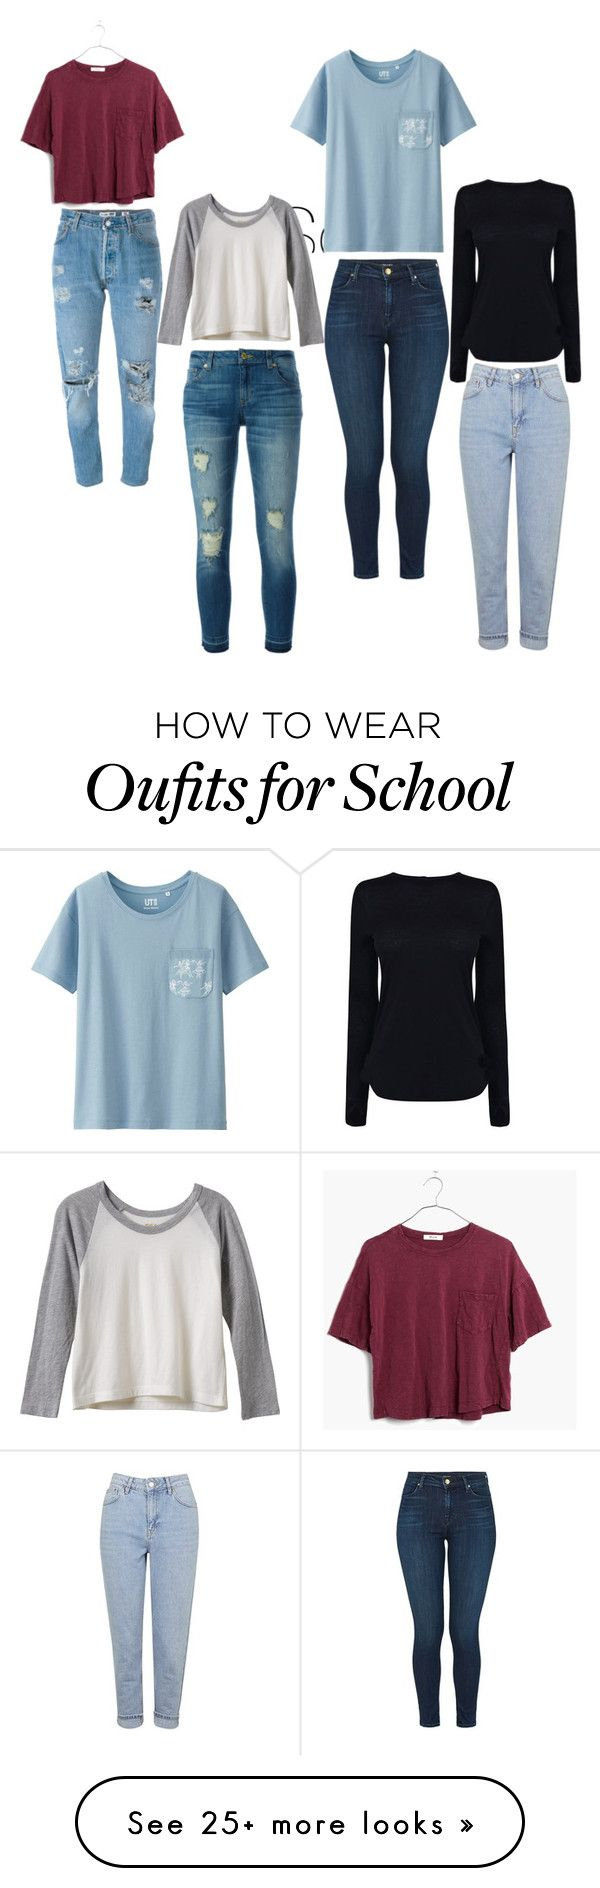 """Back to School Inspiration"" by emiipear on Polyvore featuring Uniqlo, Madewell, RVCA, Levi's, MICHAEL Michael Kors, J Brand, Topshop and Helmut Lang"